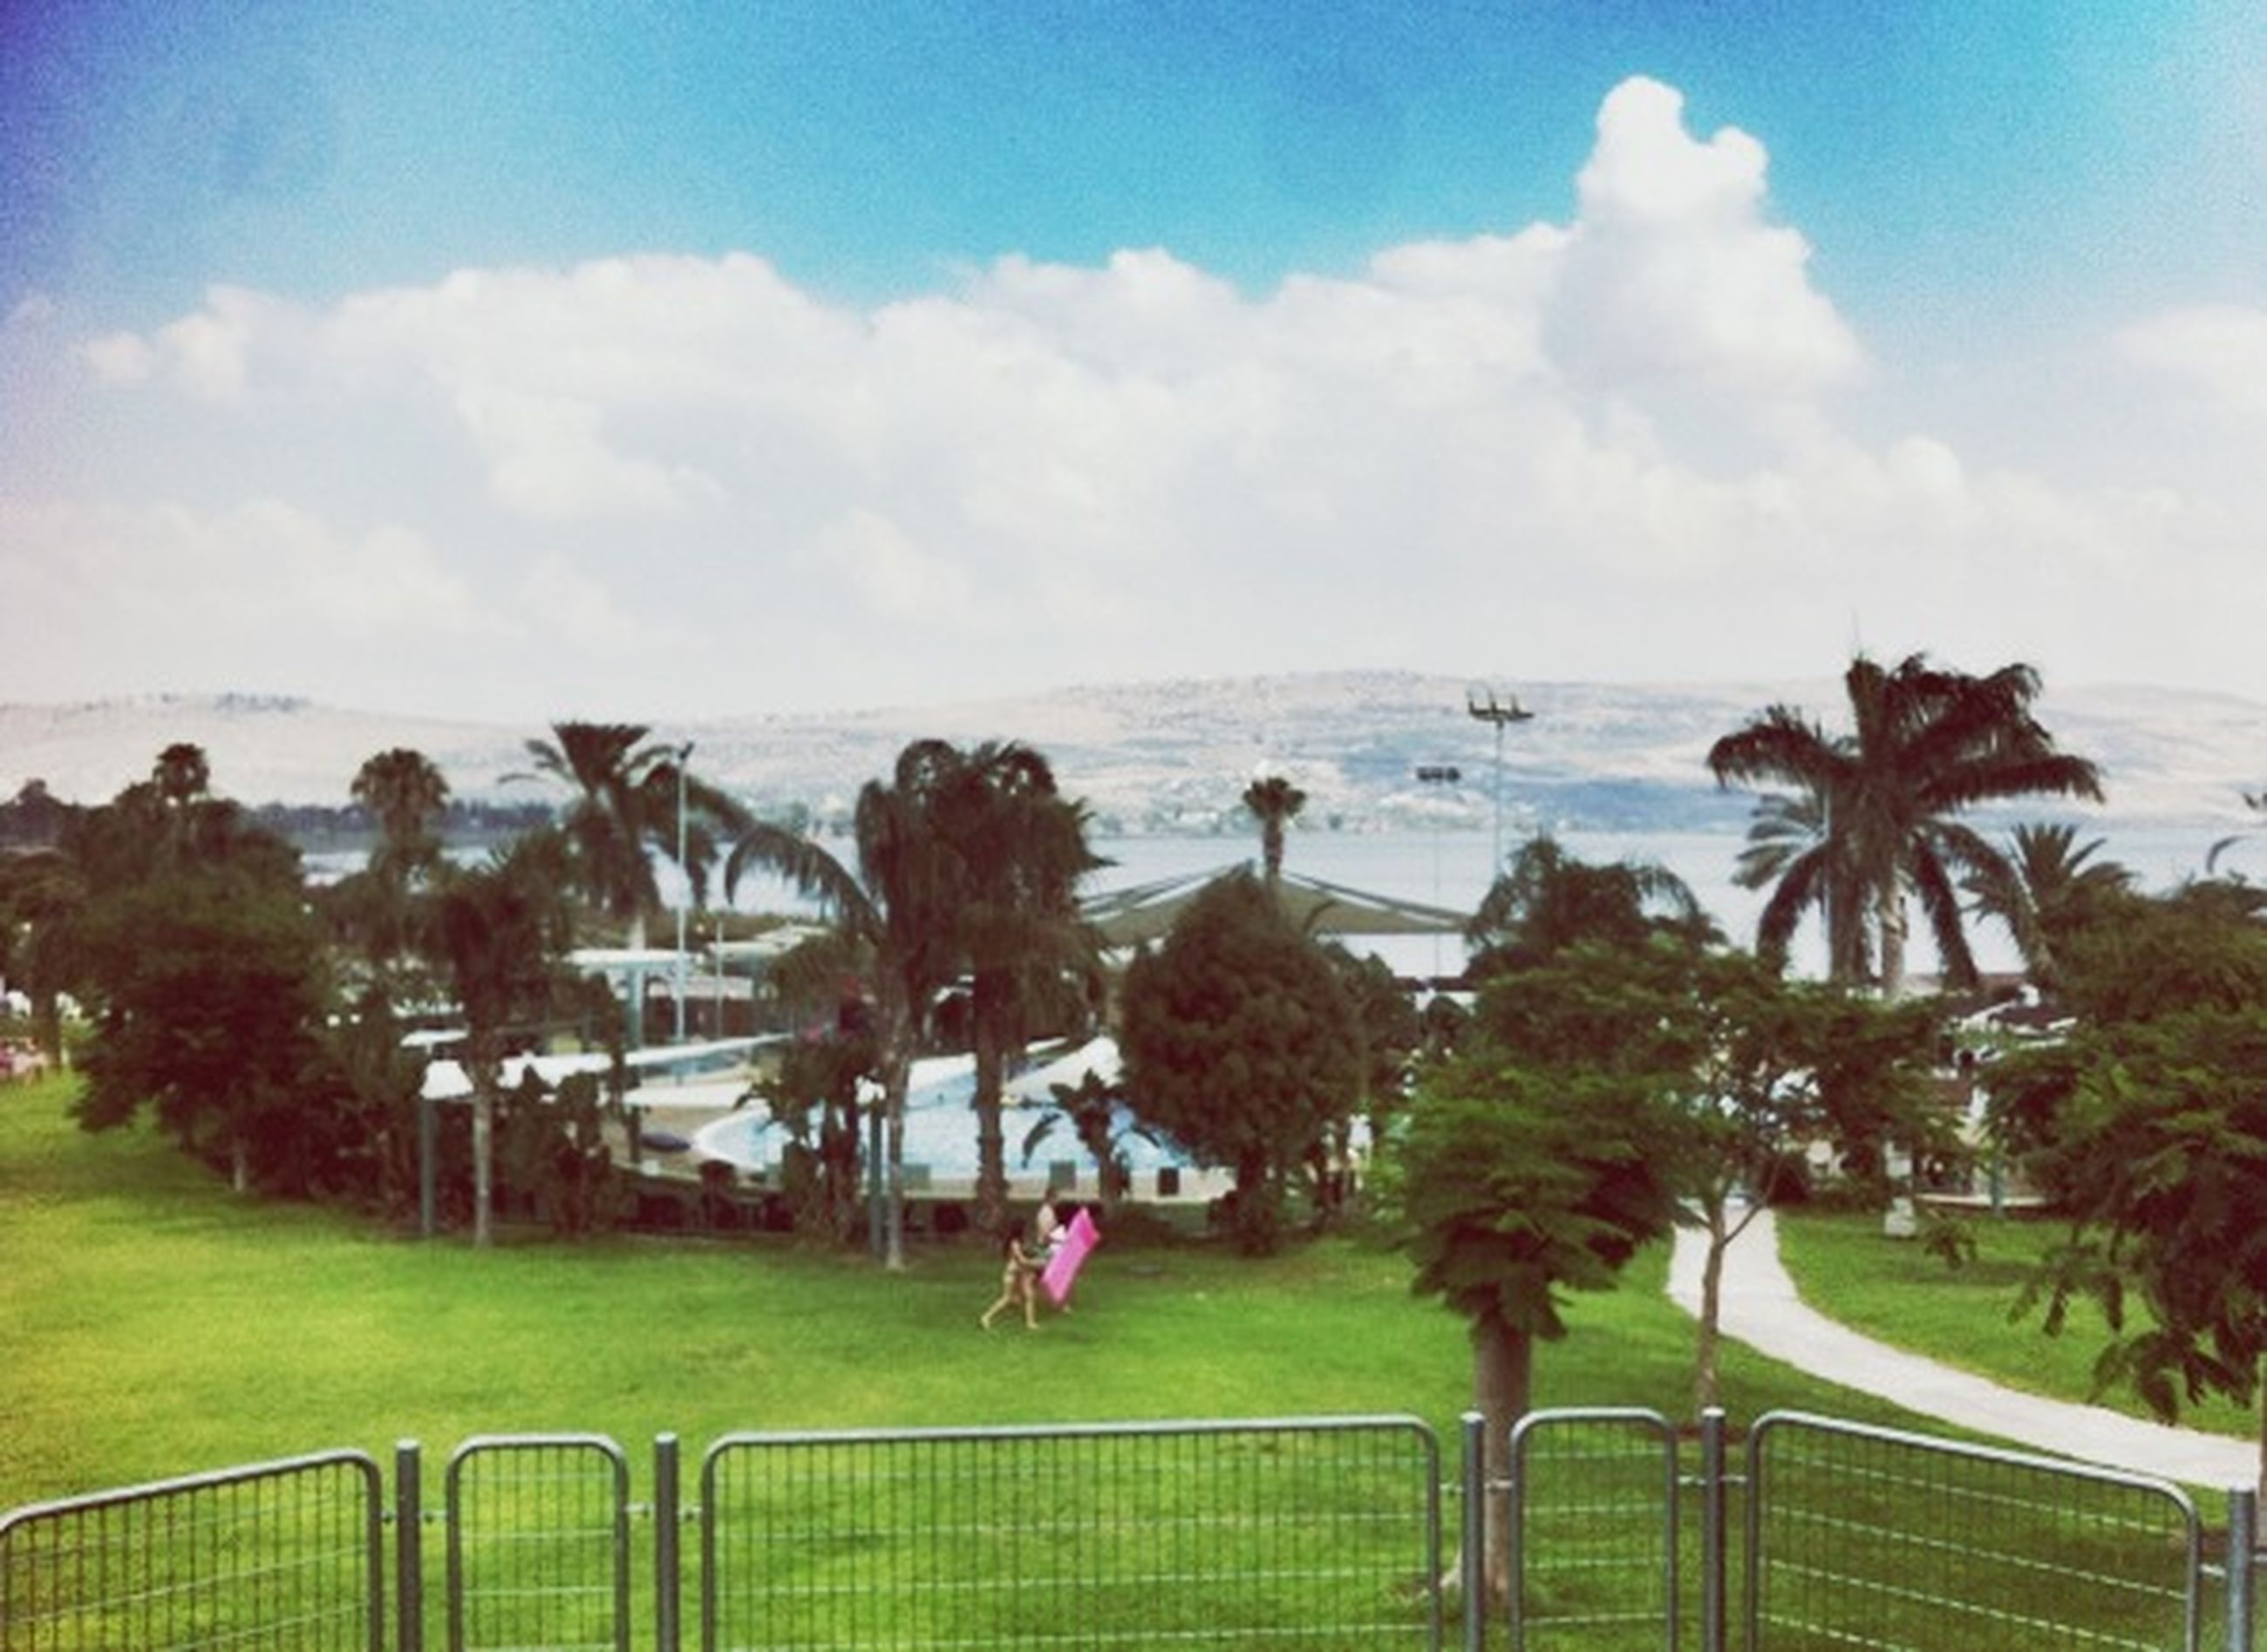 sky, cloud - sky, sea, tree, cloudy, palm tree, water, grass, cloud, nature, beach, tranquility, growth, beauty in nature, incidental people, day, tranquil scene, scenics, park - man made space, outdoors